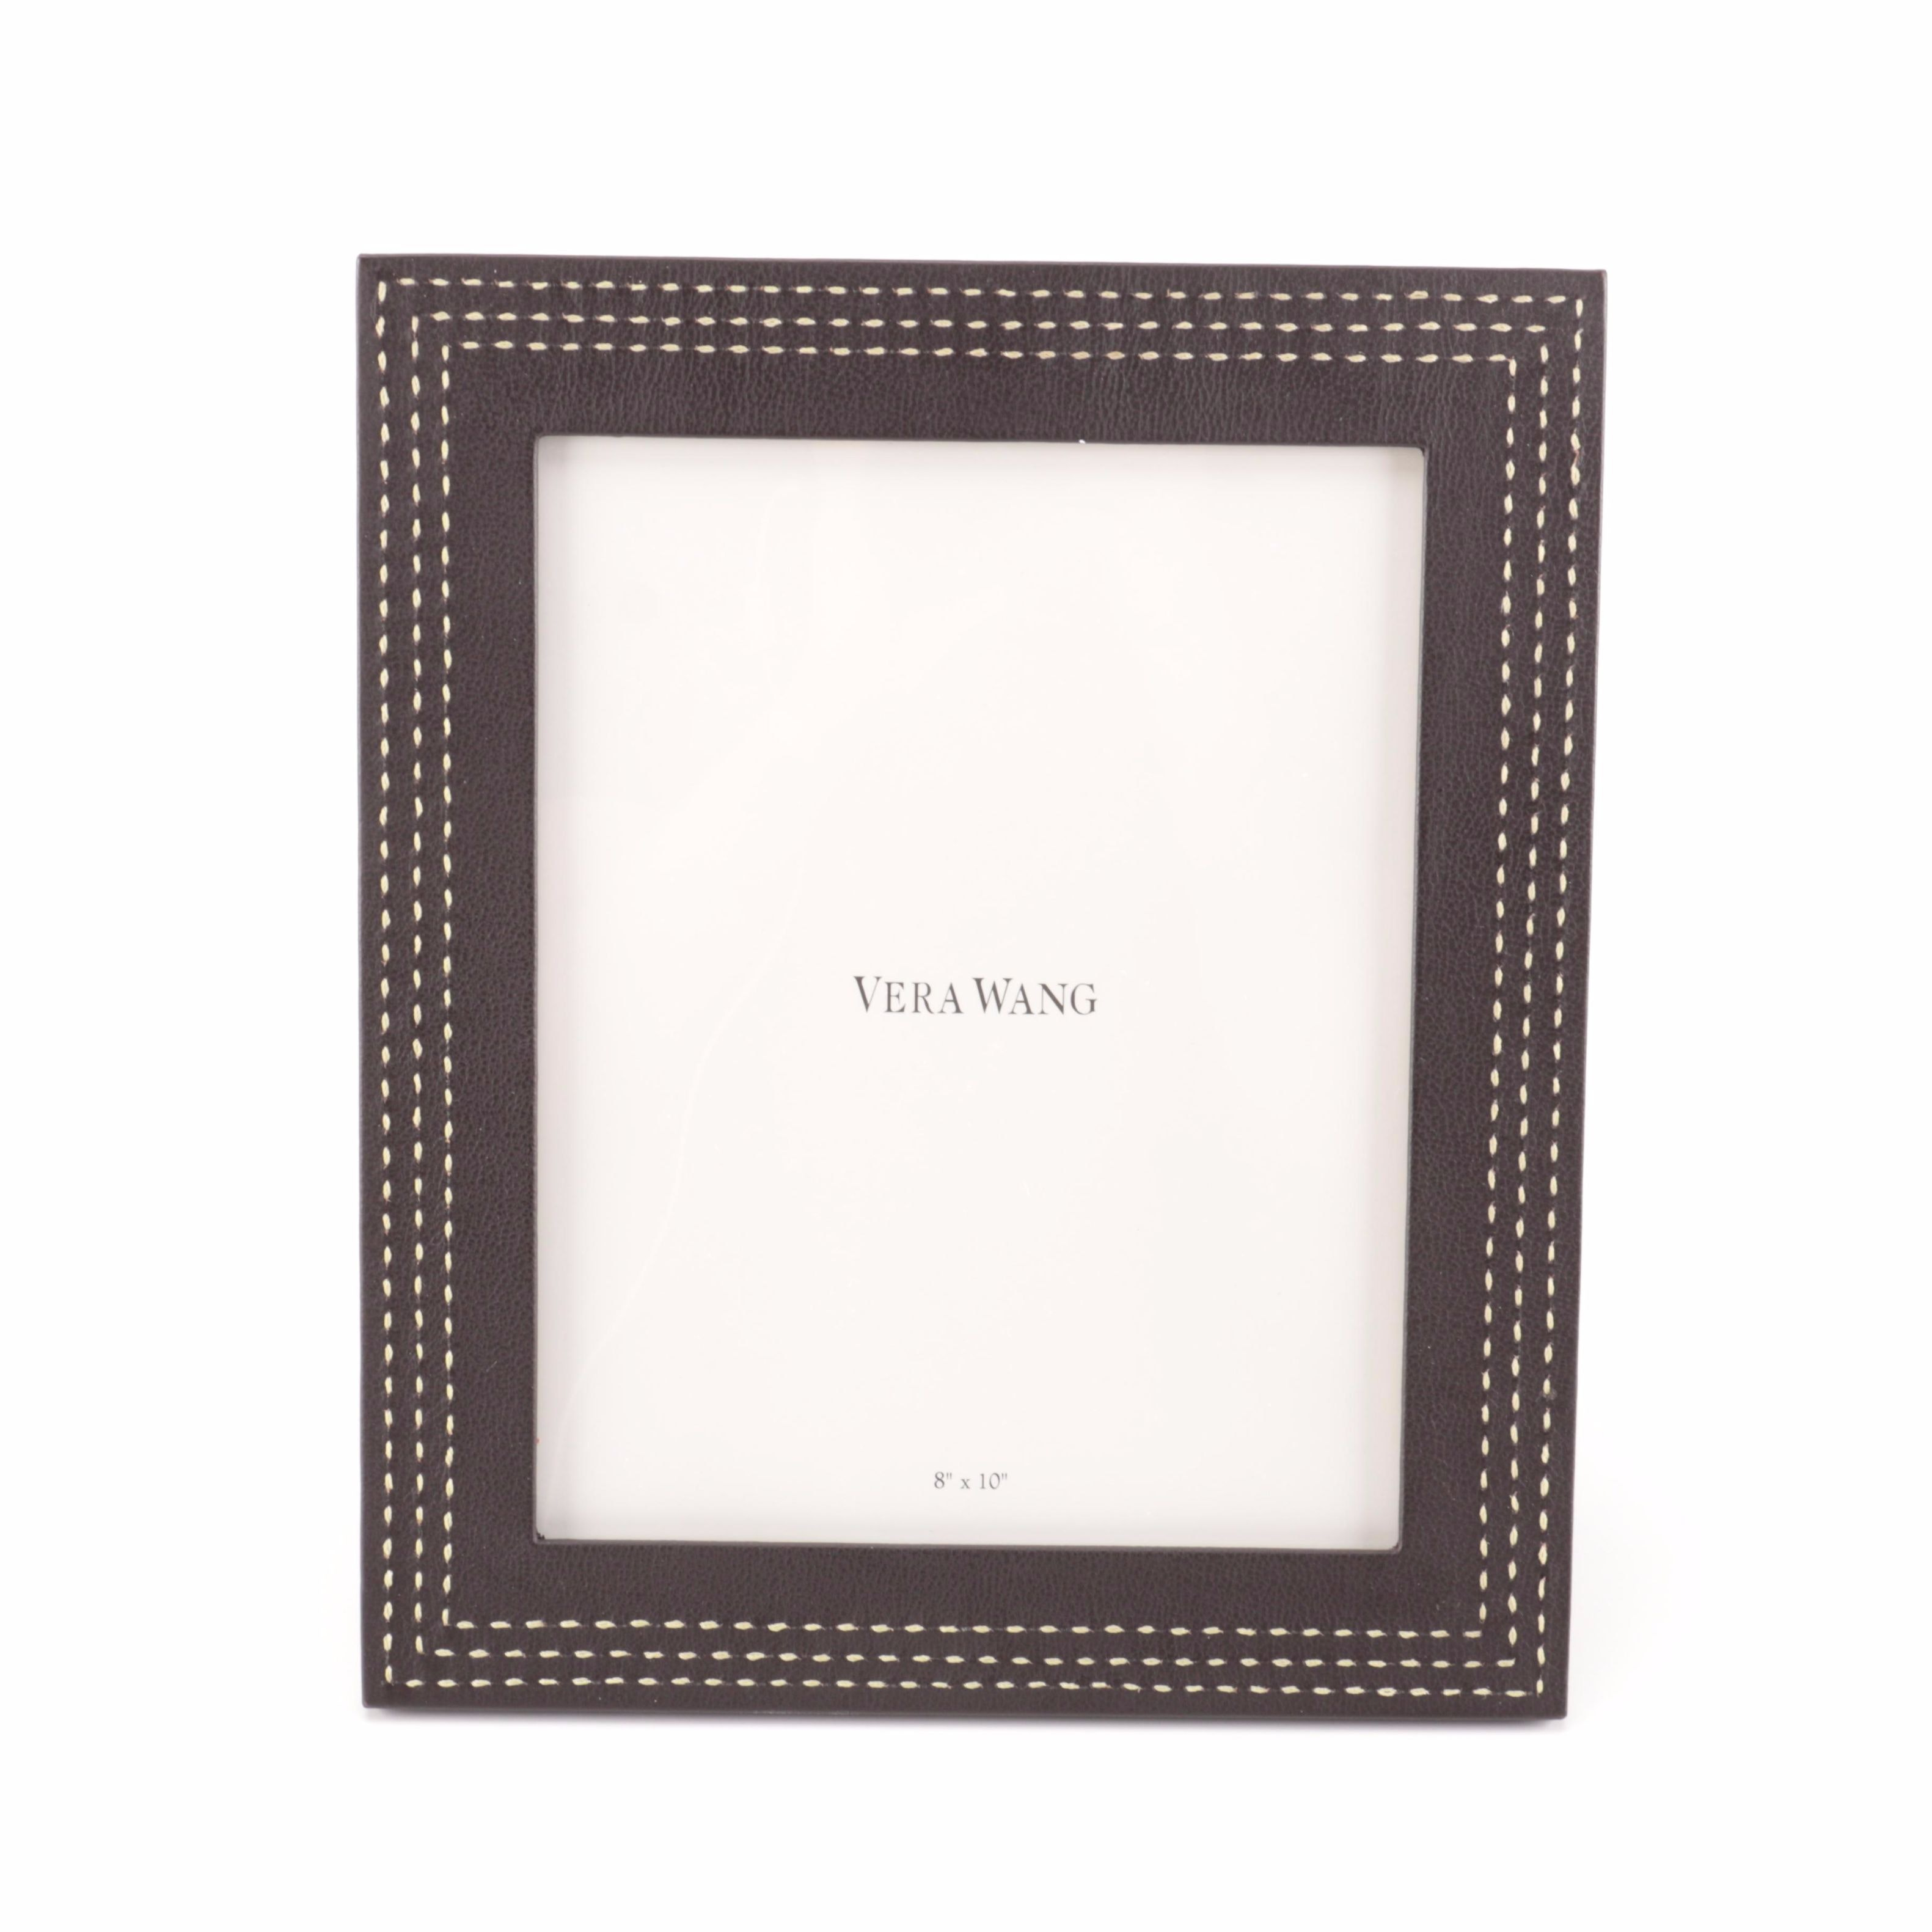 Vera Wang Leather Picture Frame